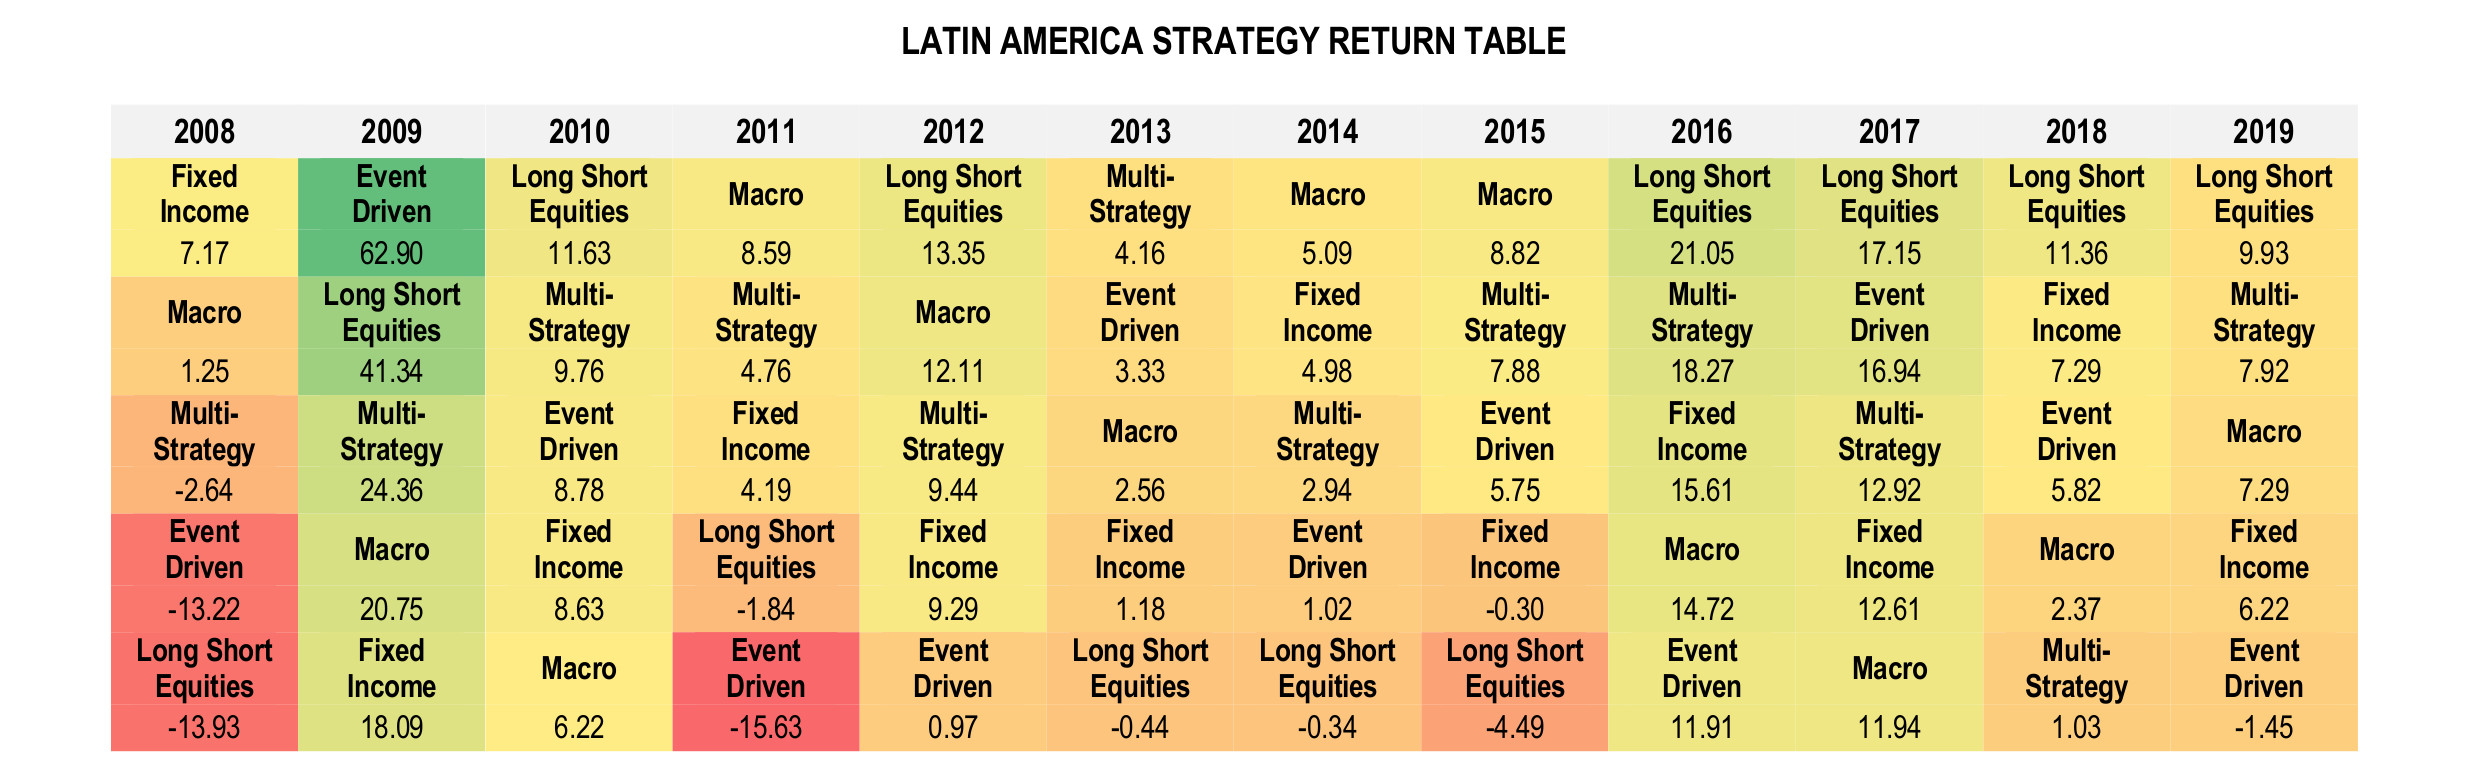 Latin American Hedge Funds Infographic November 2019 - Strategy Return Table